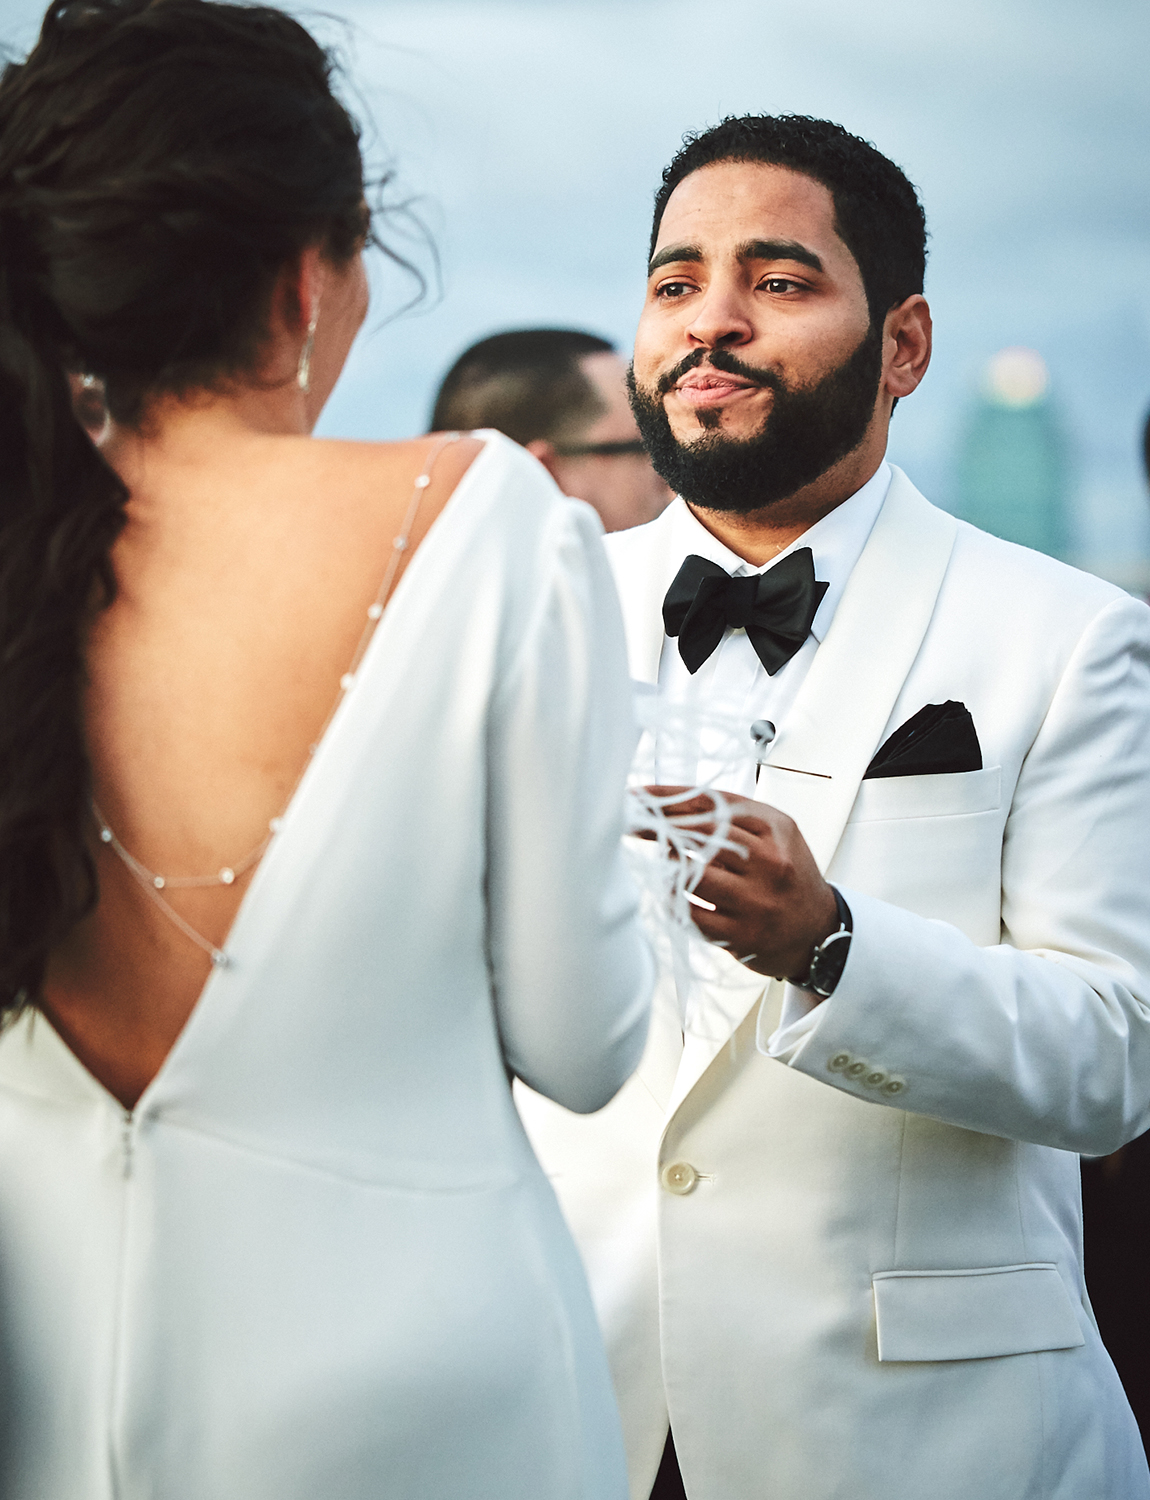 170930_WilliamValeWeddingPhotography_BrooklynWeddingPhotographer_By_BriJohnsonWeddings_0125.jpg